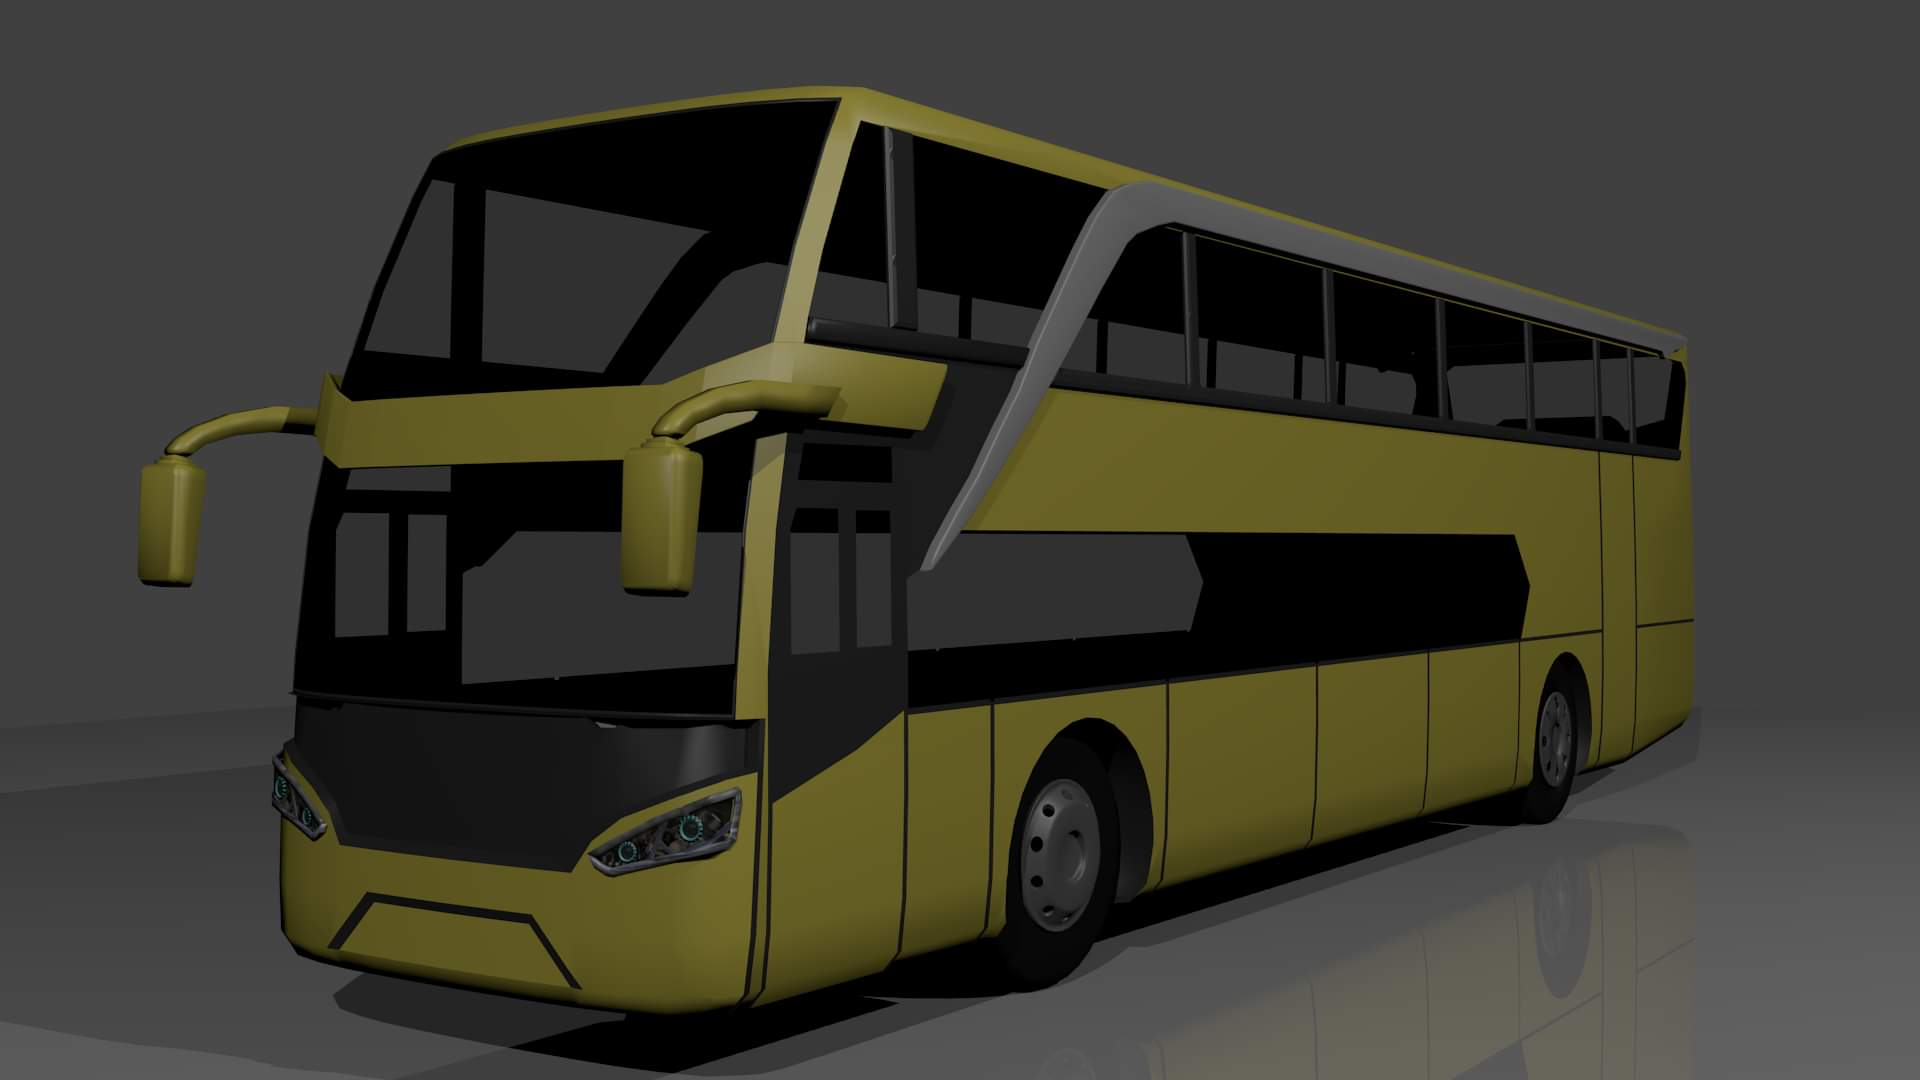 Download Jetbus 2 SDD Mod for Bus Simulator Indonesia, Jetbus 2 SDD, AZUMODS, BUSSID mod, JetBus 2 HD Kuler Bus Mod, JetBus 2 Mod, Jetbus 2 SDD, Jetbus 2 SDD mod for bussid, JetBus 2+ Bus Mod, JetBus HD Bus Mod, JetBus2, SGCArena